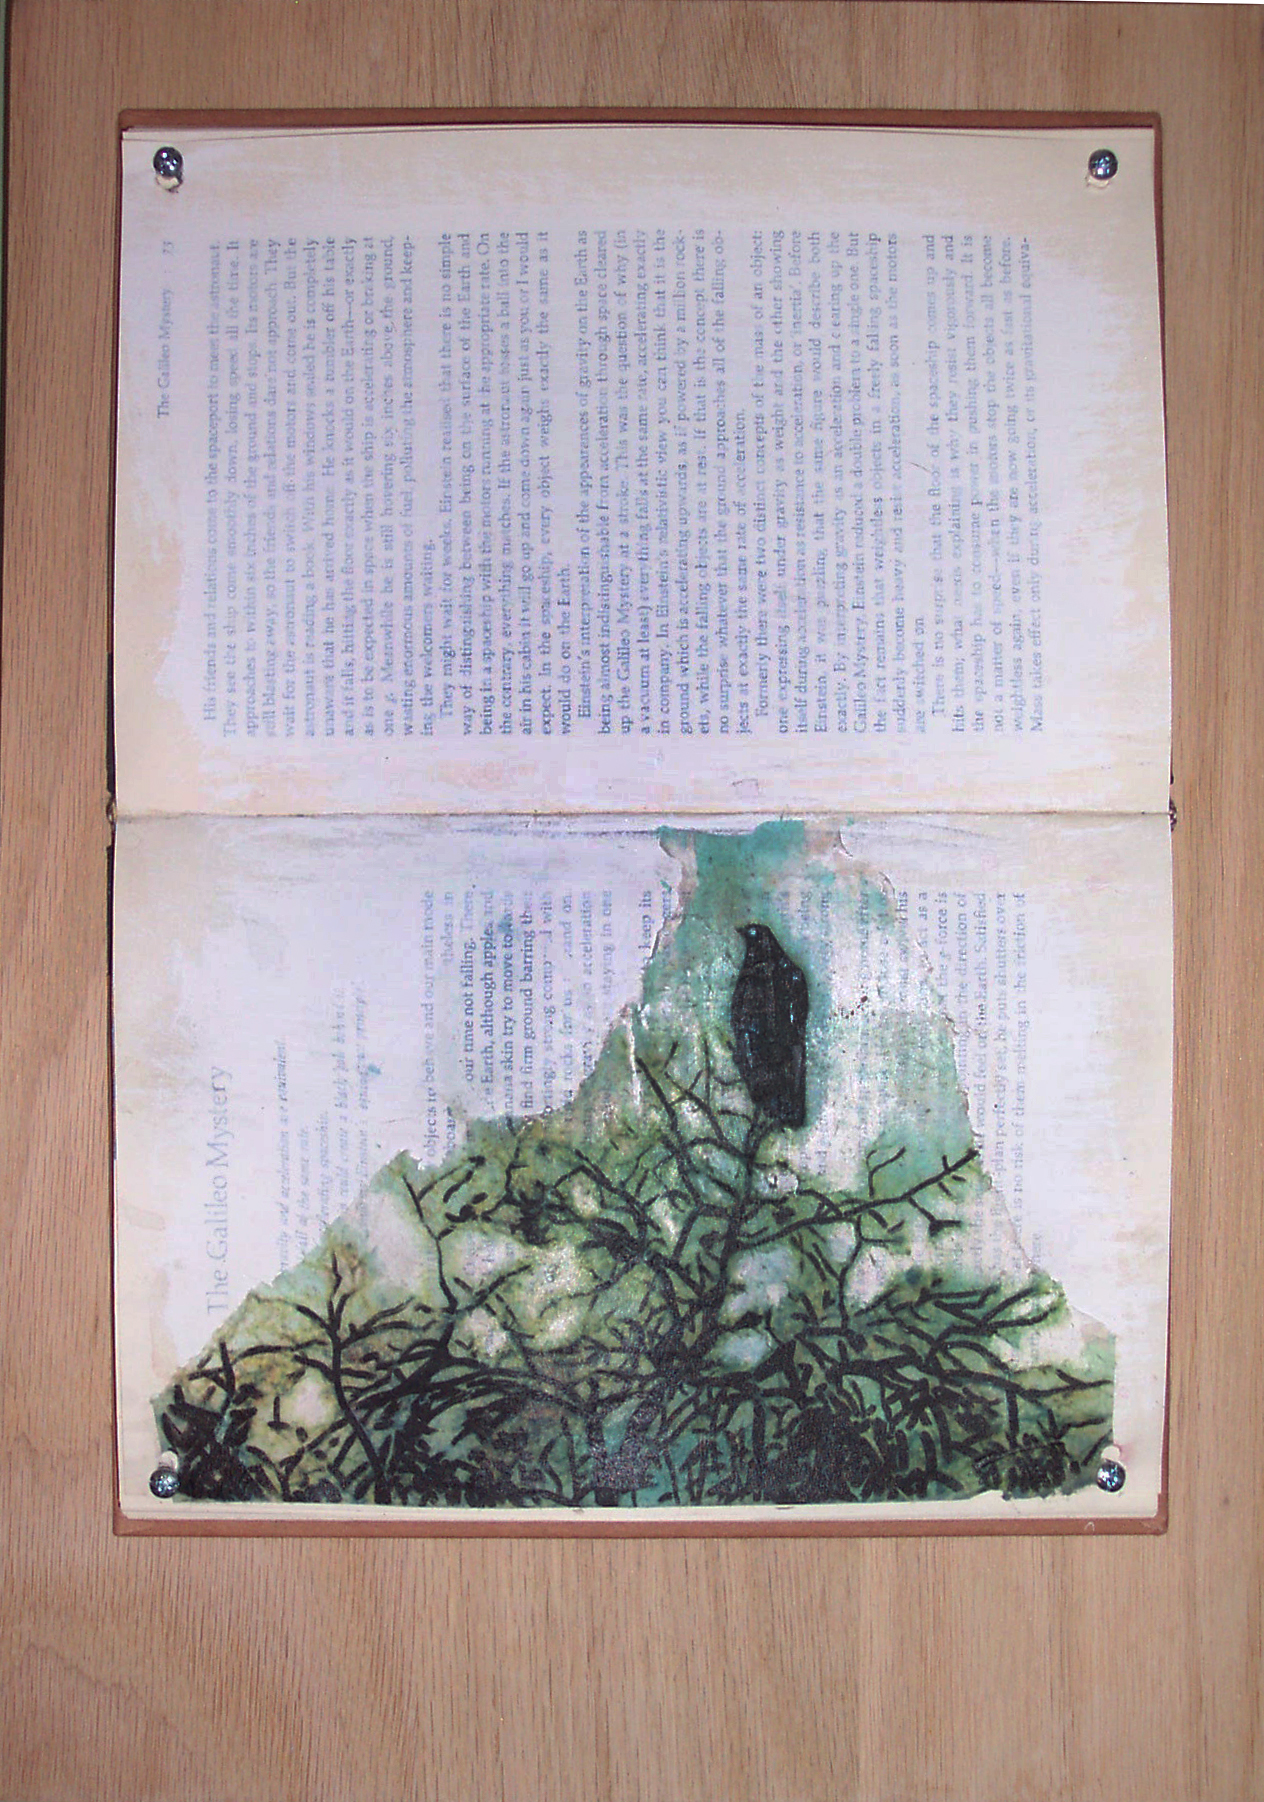 As the Crow Flies (pt. 1). 2008. Altered book, transfer print, gesso, screws, oak. -